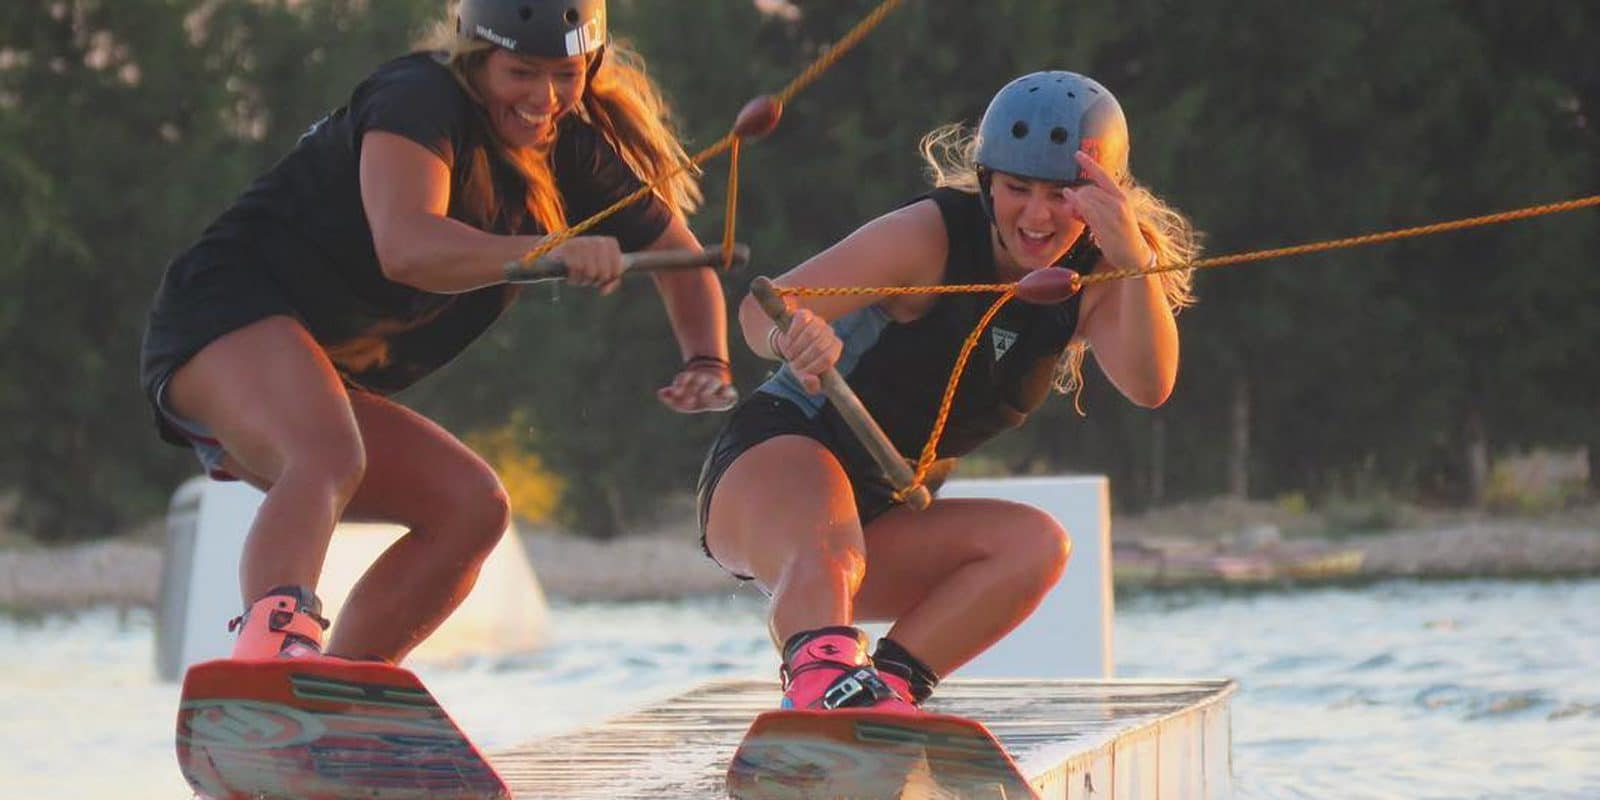 Why You Shouldn't Be Intimidated By Your First Time at the Cable Park